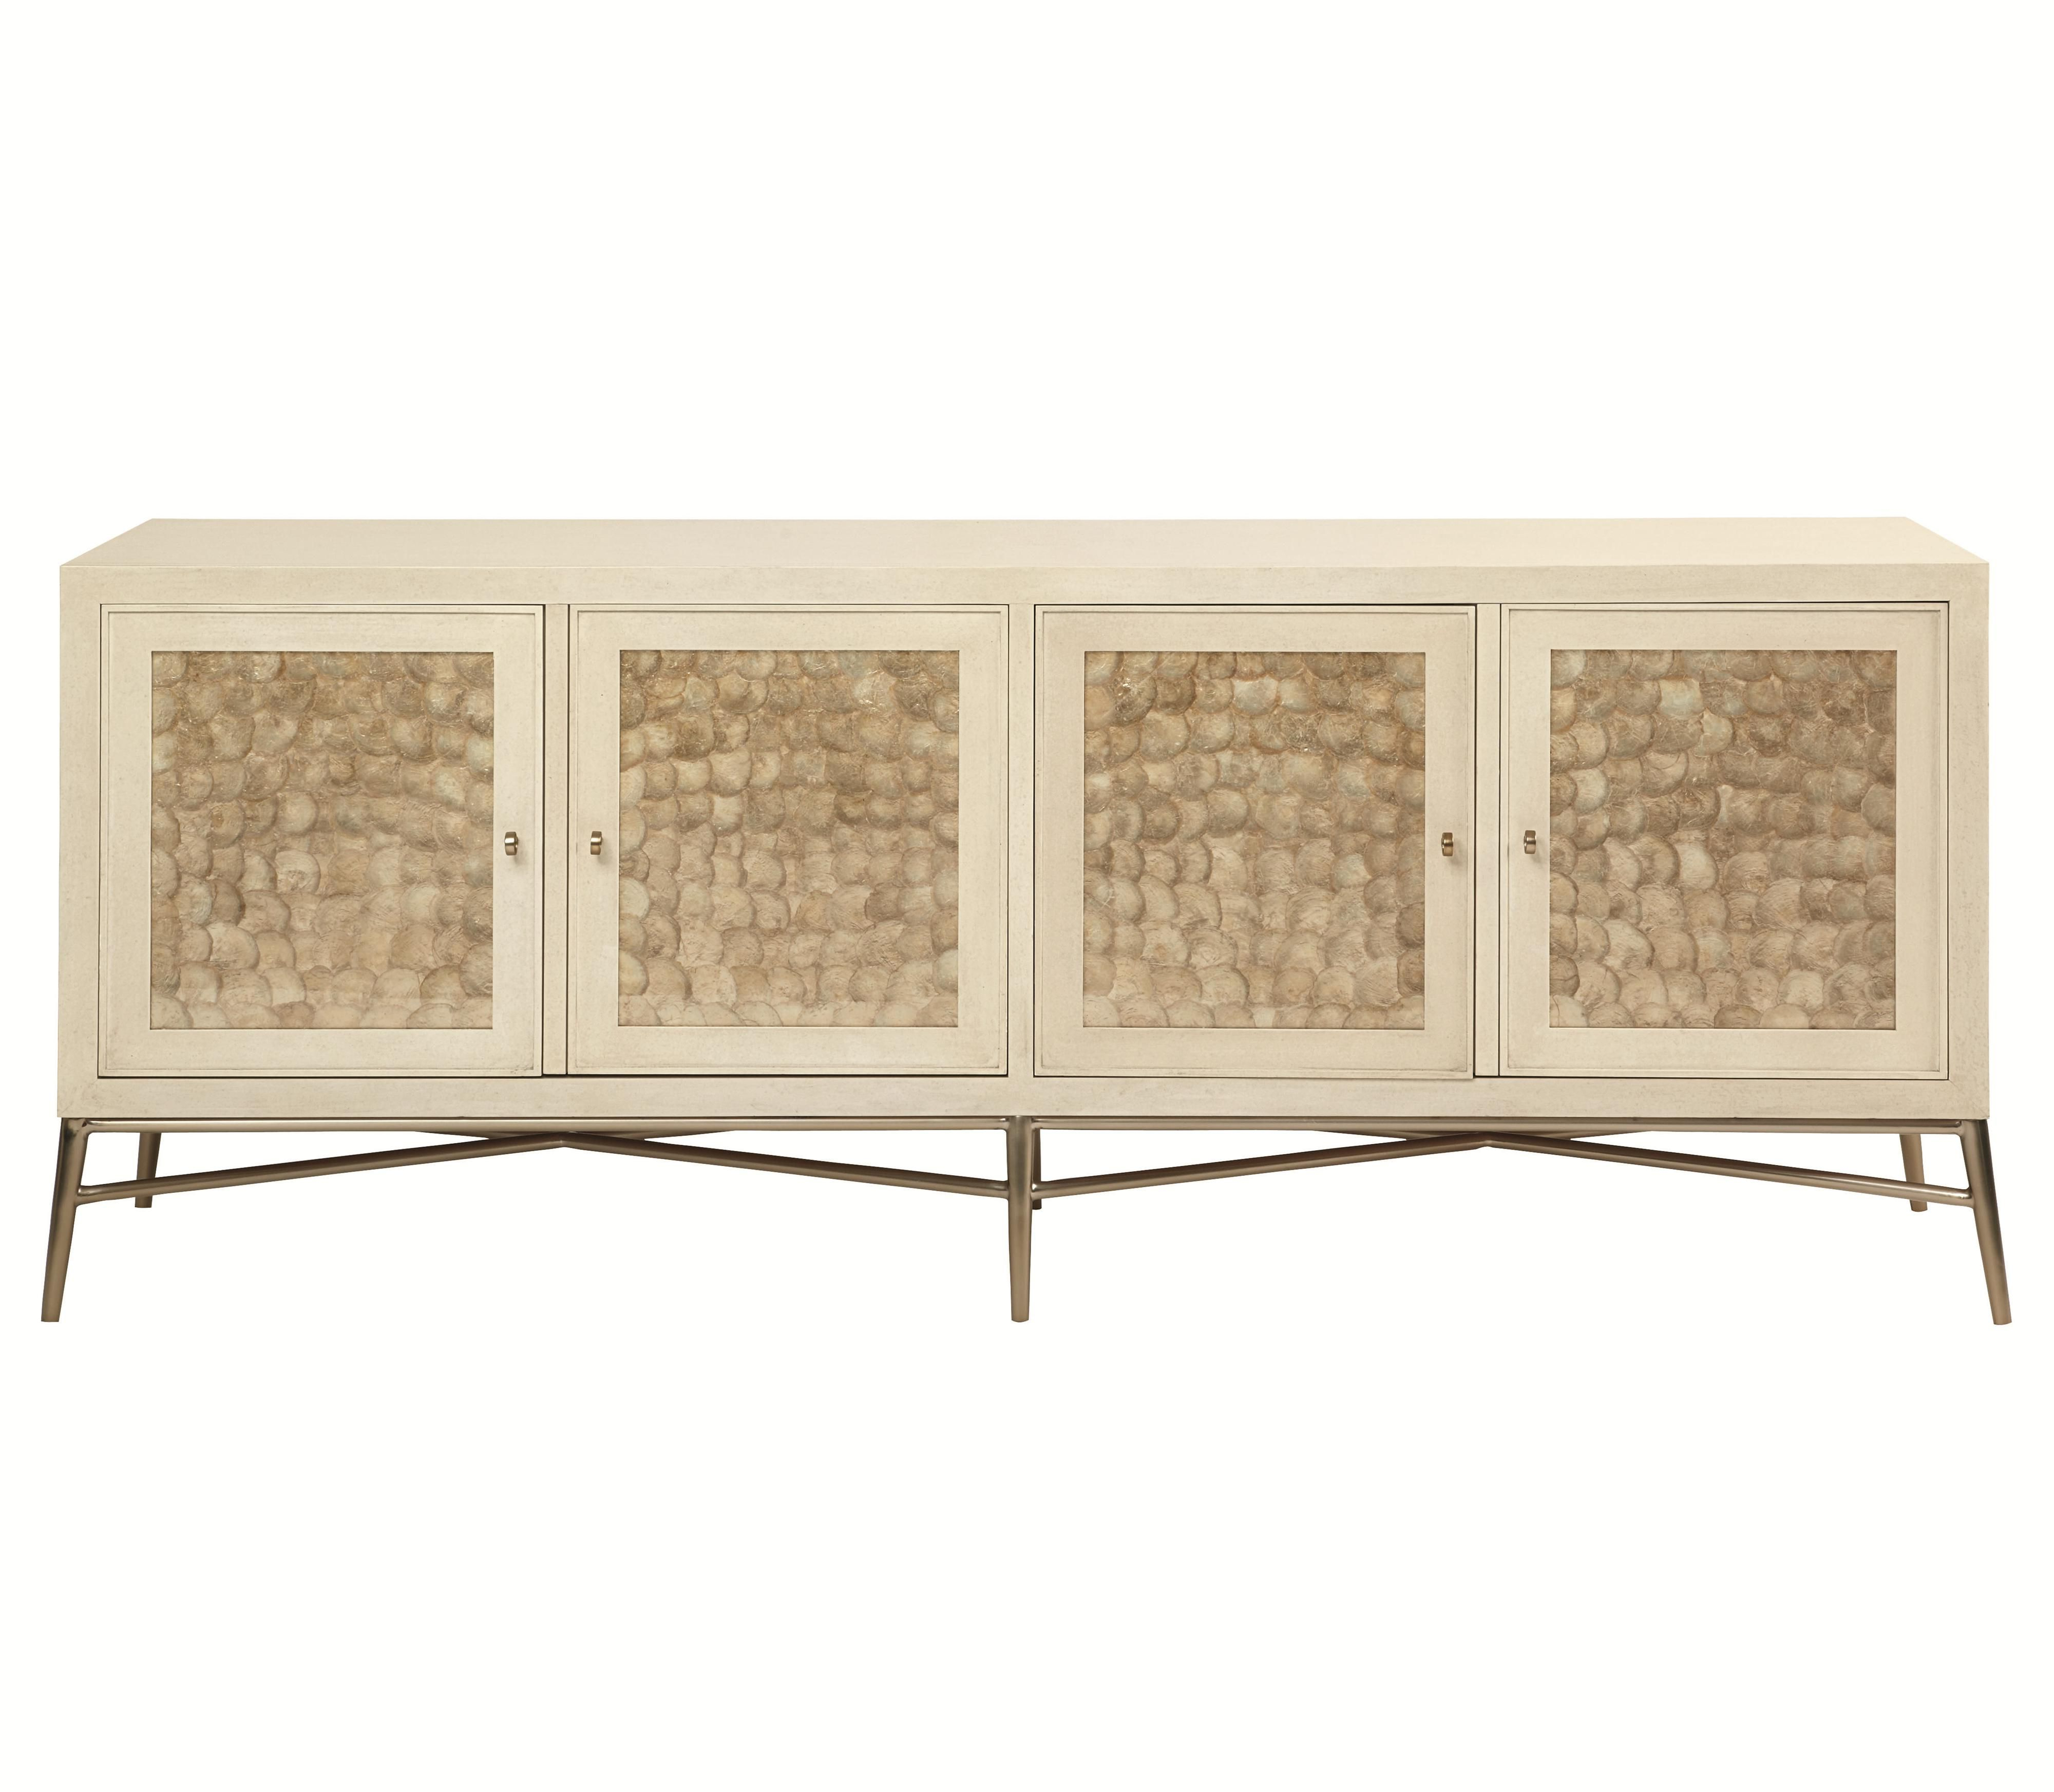 Widely Used Salon 4 Door Buffet With Inset Capiz Shellsbernhardt (Gallery 10 of 20)